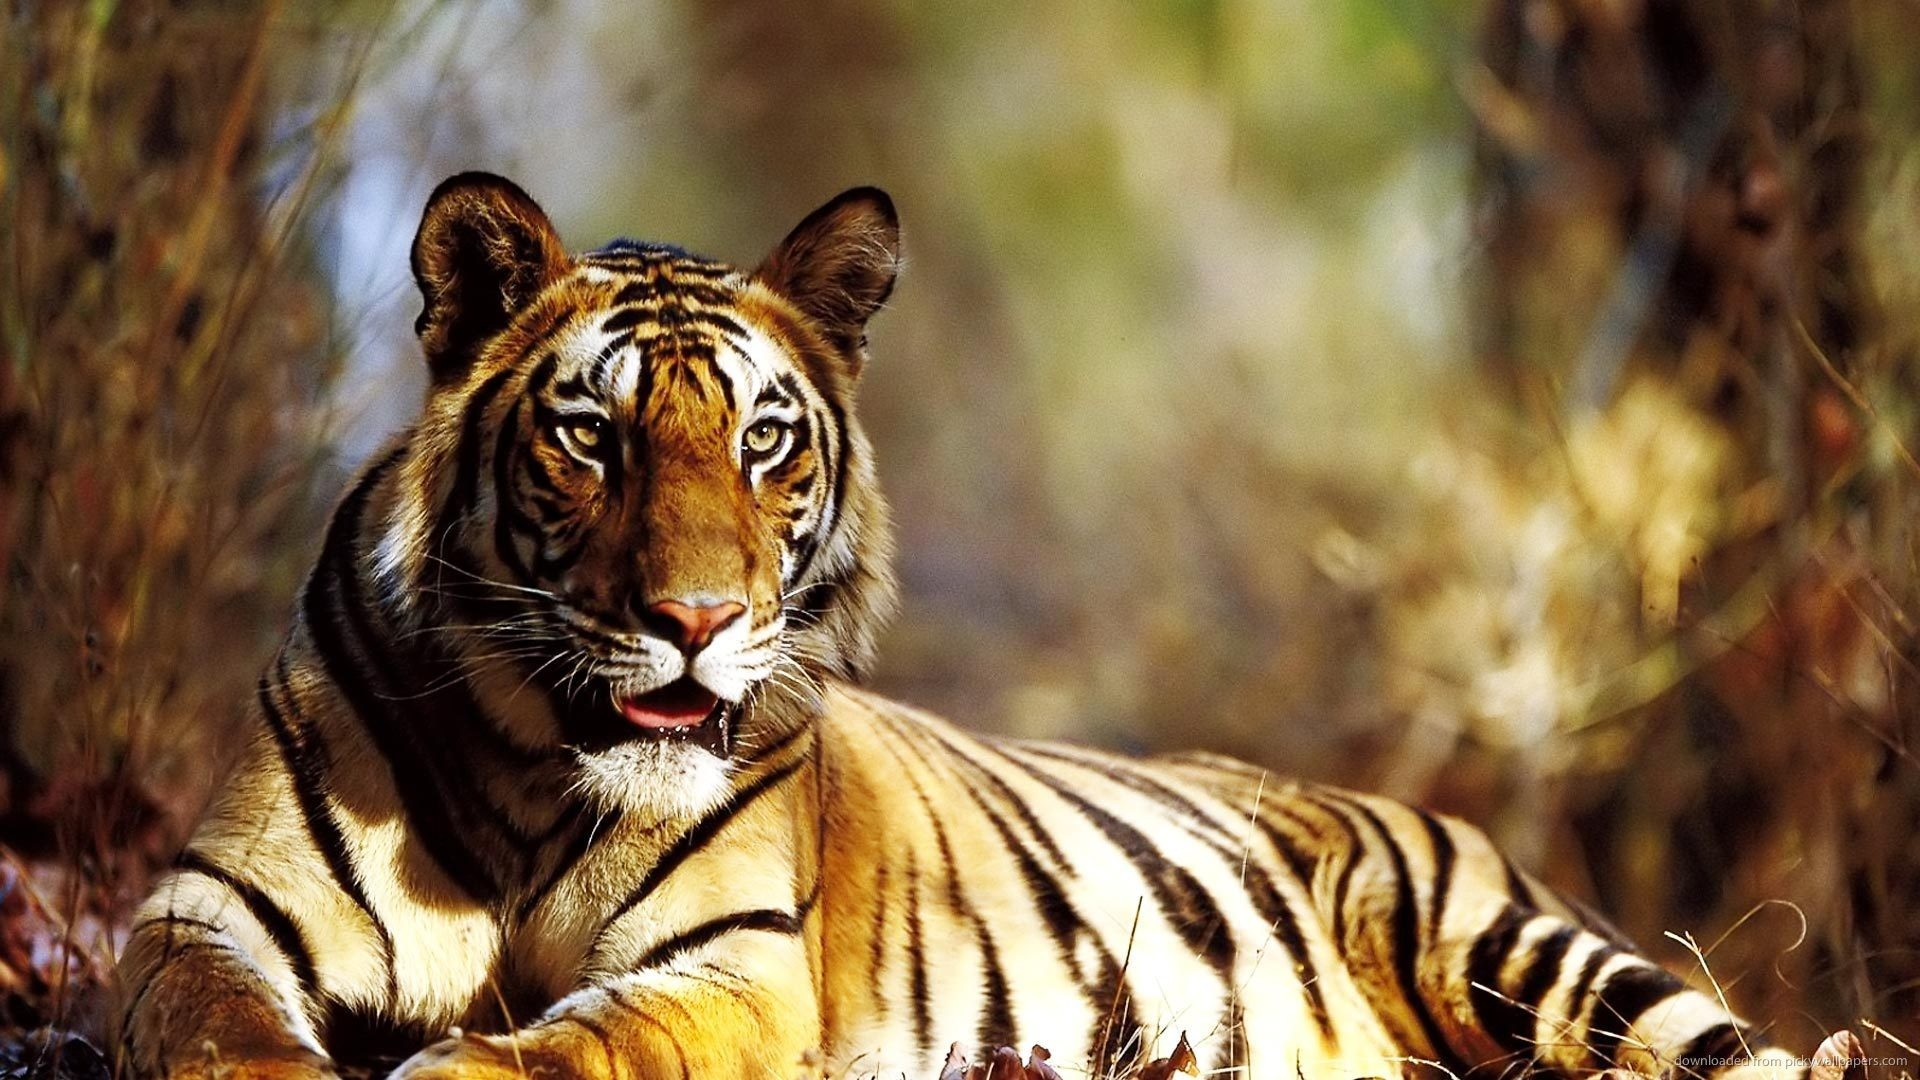 Tiger HD Wallpapers Full High Quality New Backgrounds